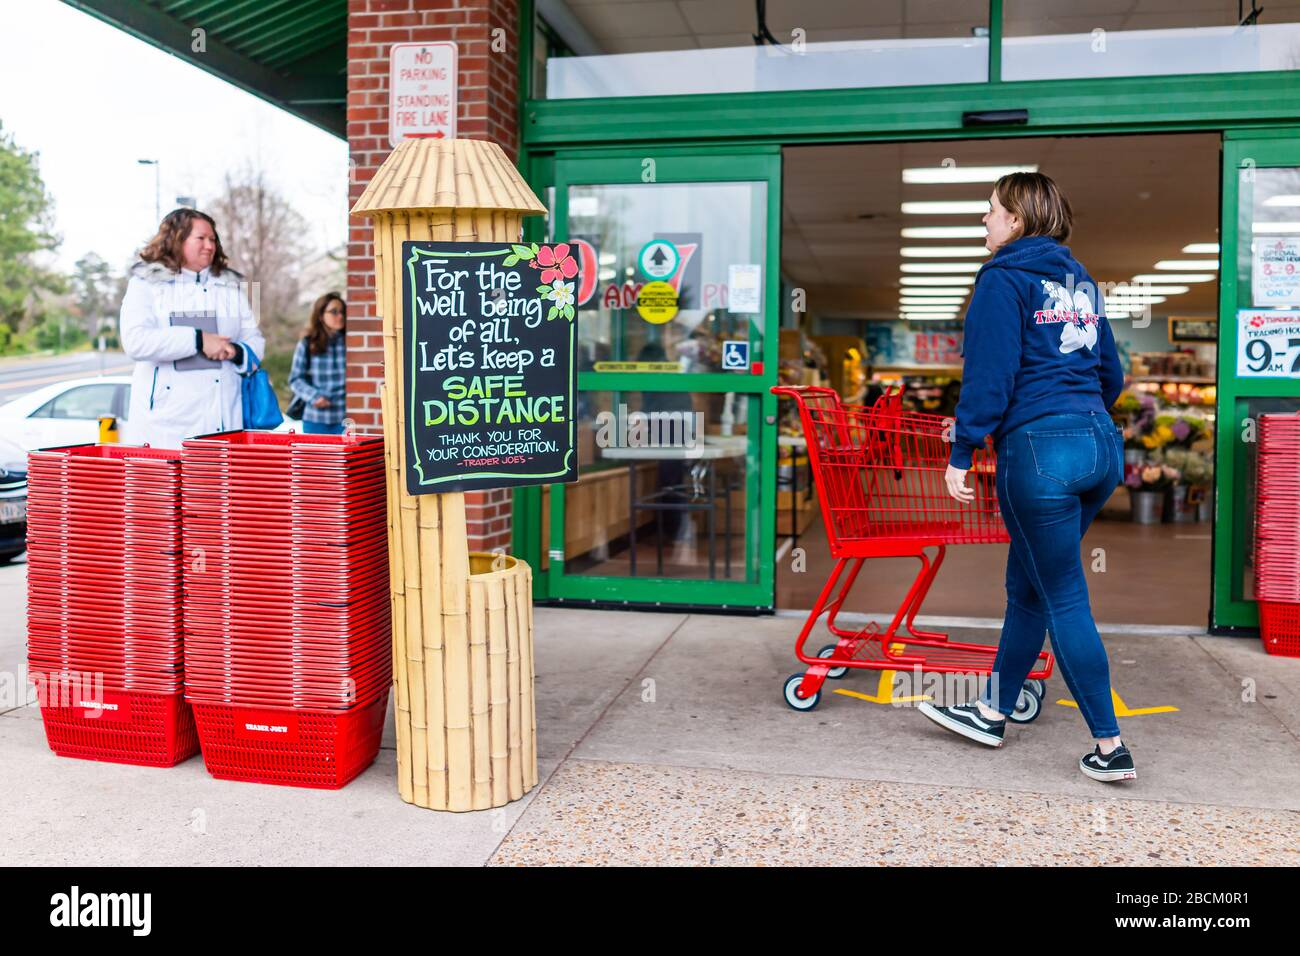 Reston, USA - April 1, 2020: Trader Joe's grocery store sign for social distance customer distancing by shop entrance with people in line, employee wo Stock Photo